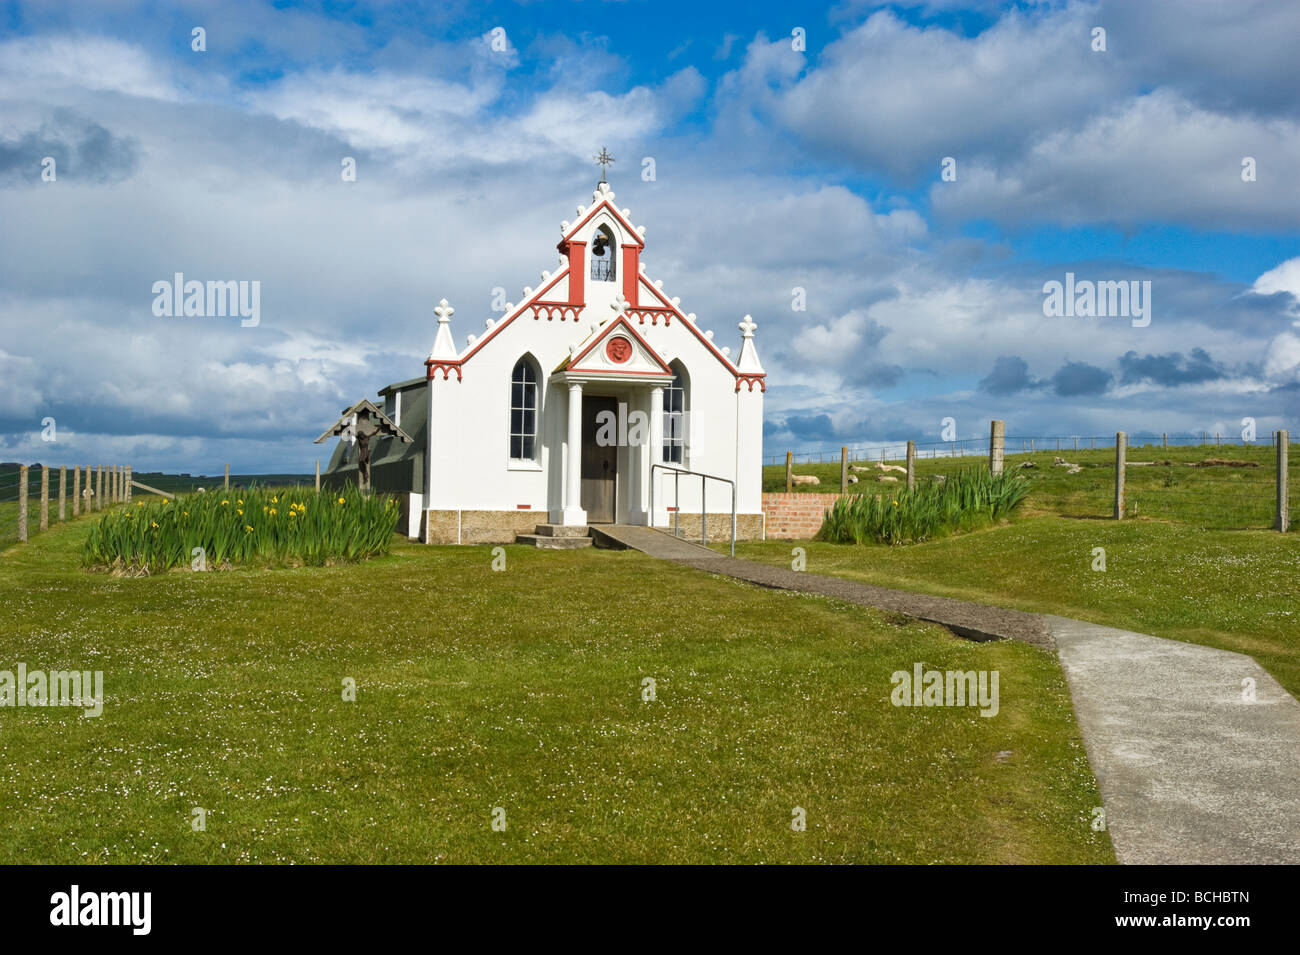 The Italian Chapel on the small island of Lamb Holm in Orkney Scotland - Stock Image